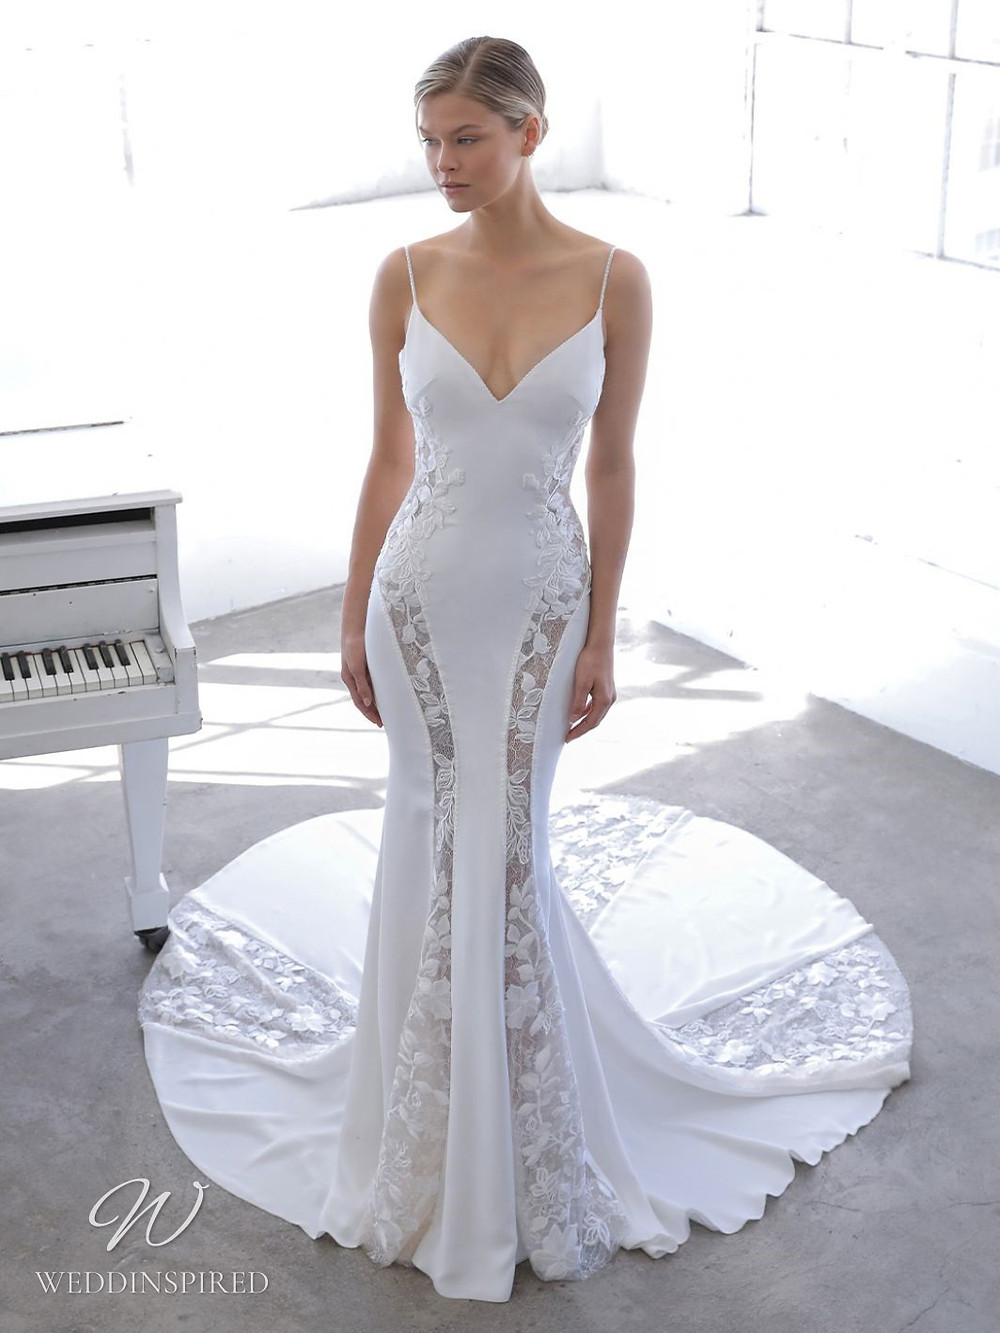 A Blue by Enzoani 2021 crepe and lace panel mermaid wedding dress with straps and a v neck